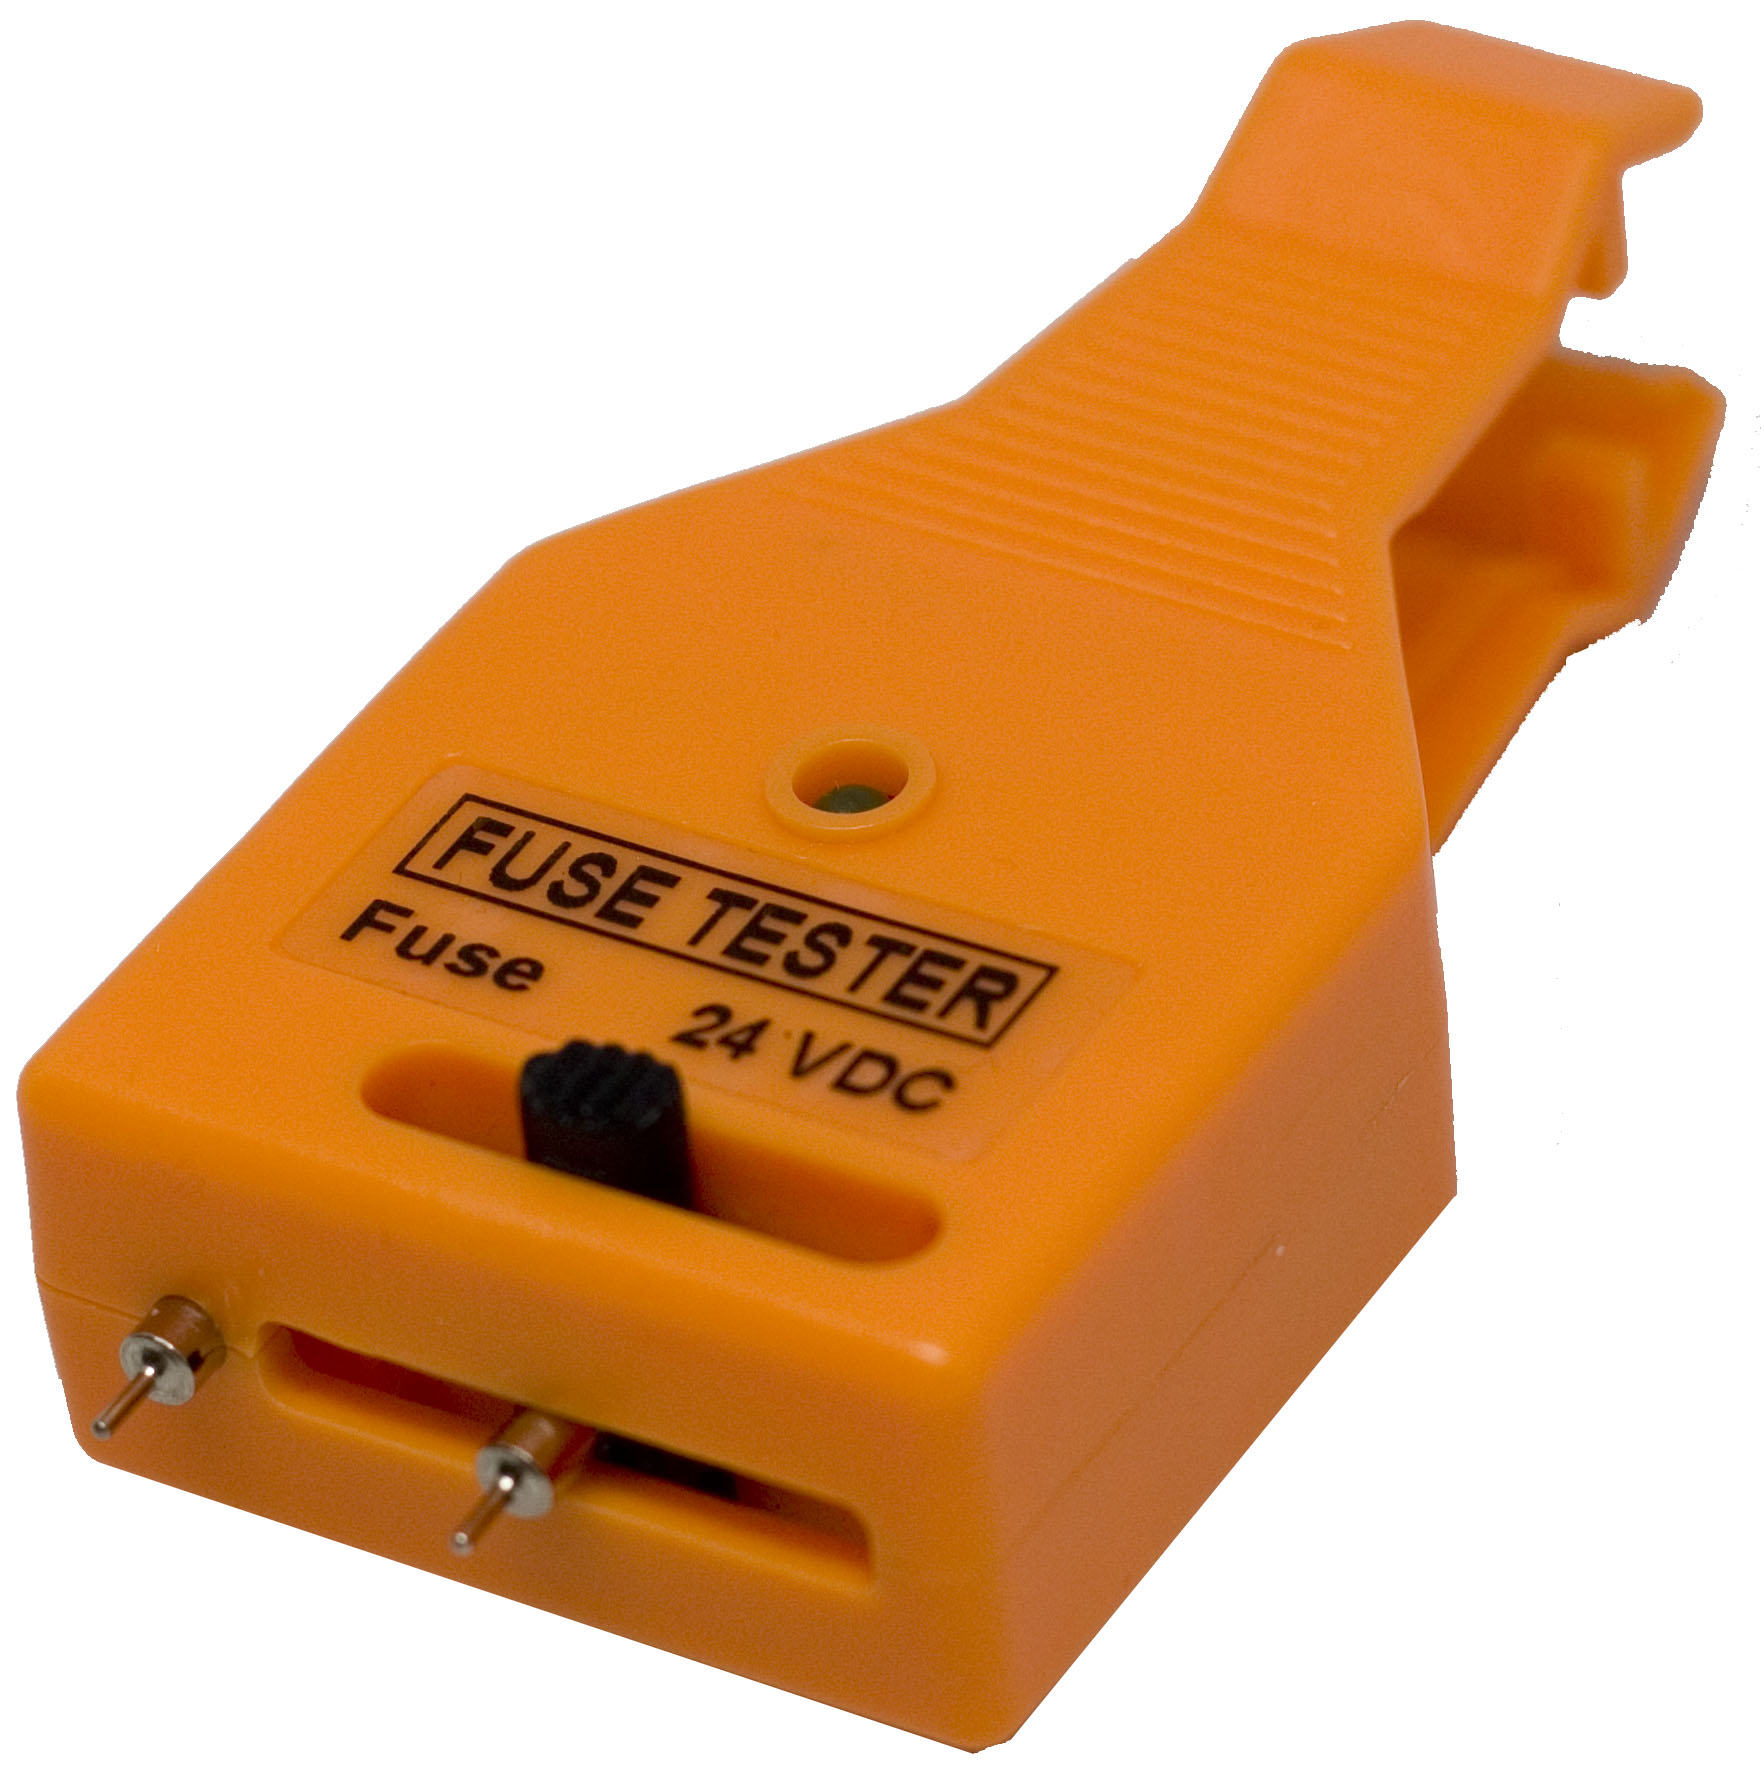 Pico Canada View Product Waterproof Fuse Box Accessory Adjustable Puller Tester